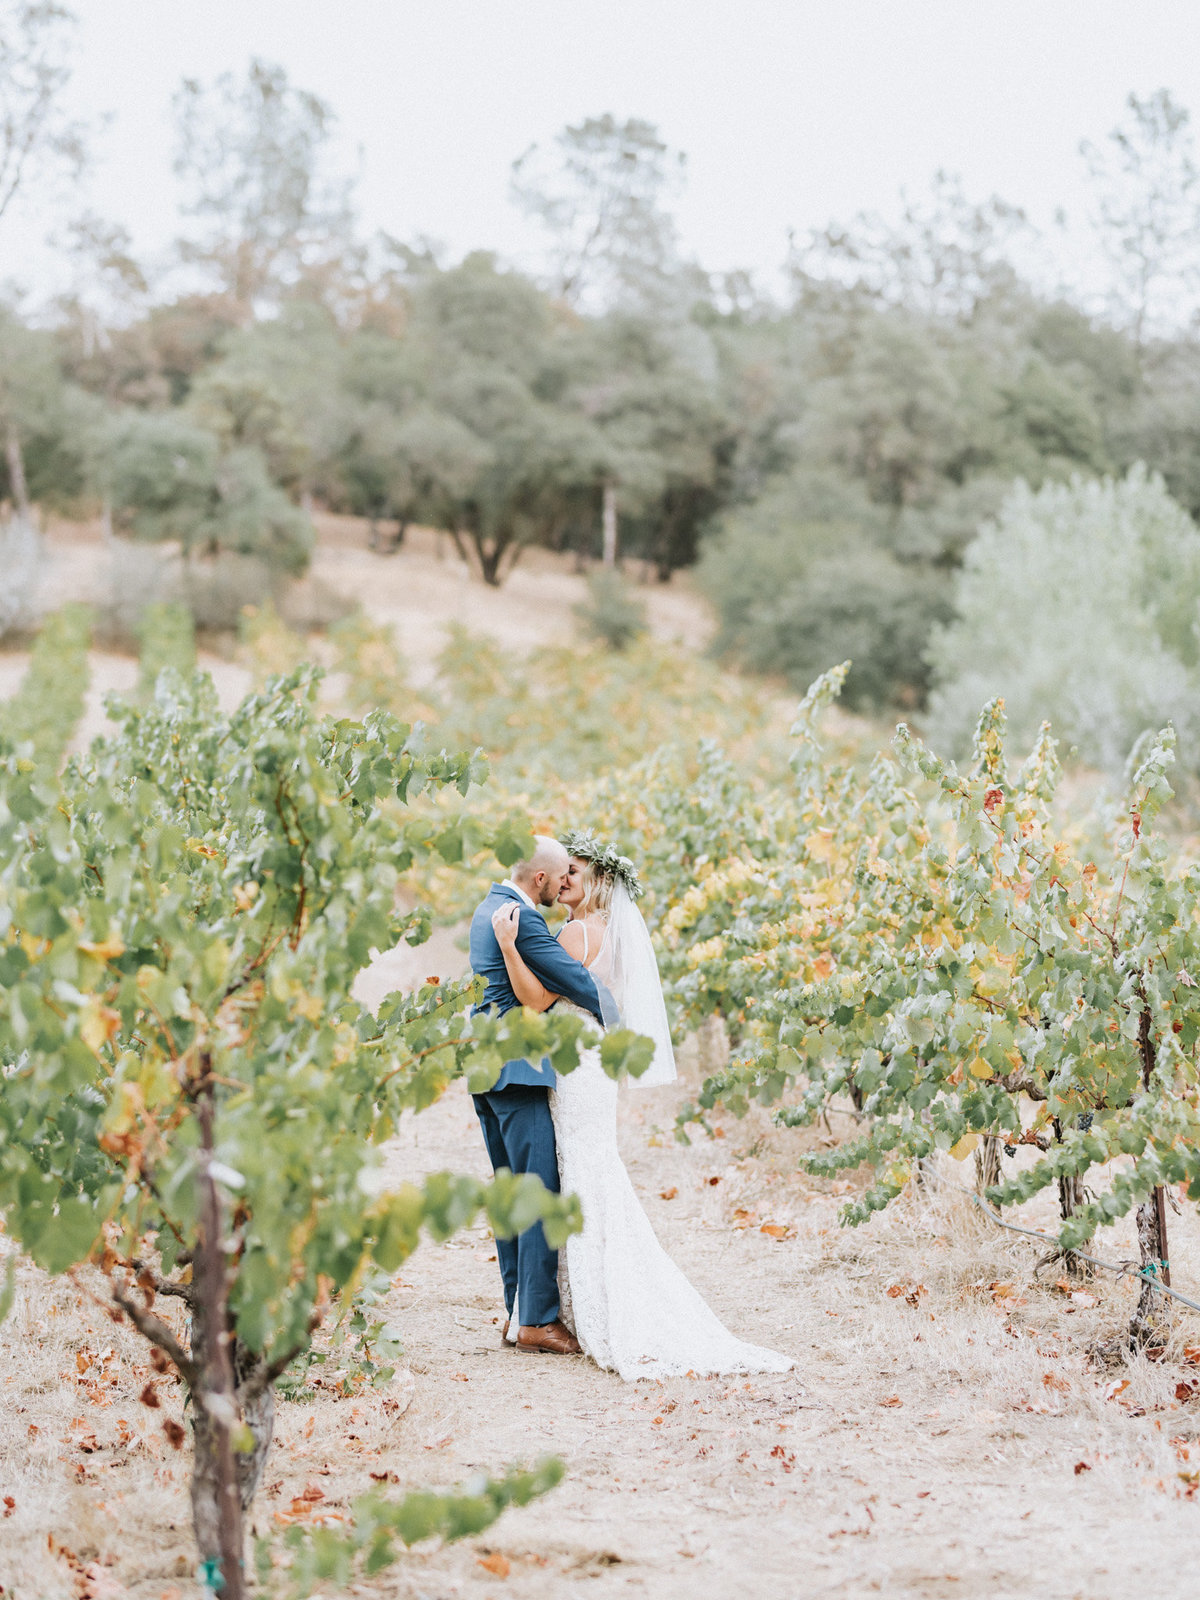 San-Diego-Wedding-Photographer-Temecula-Wedding-Venue-20